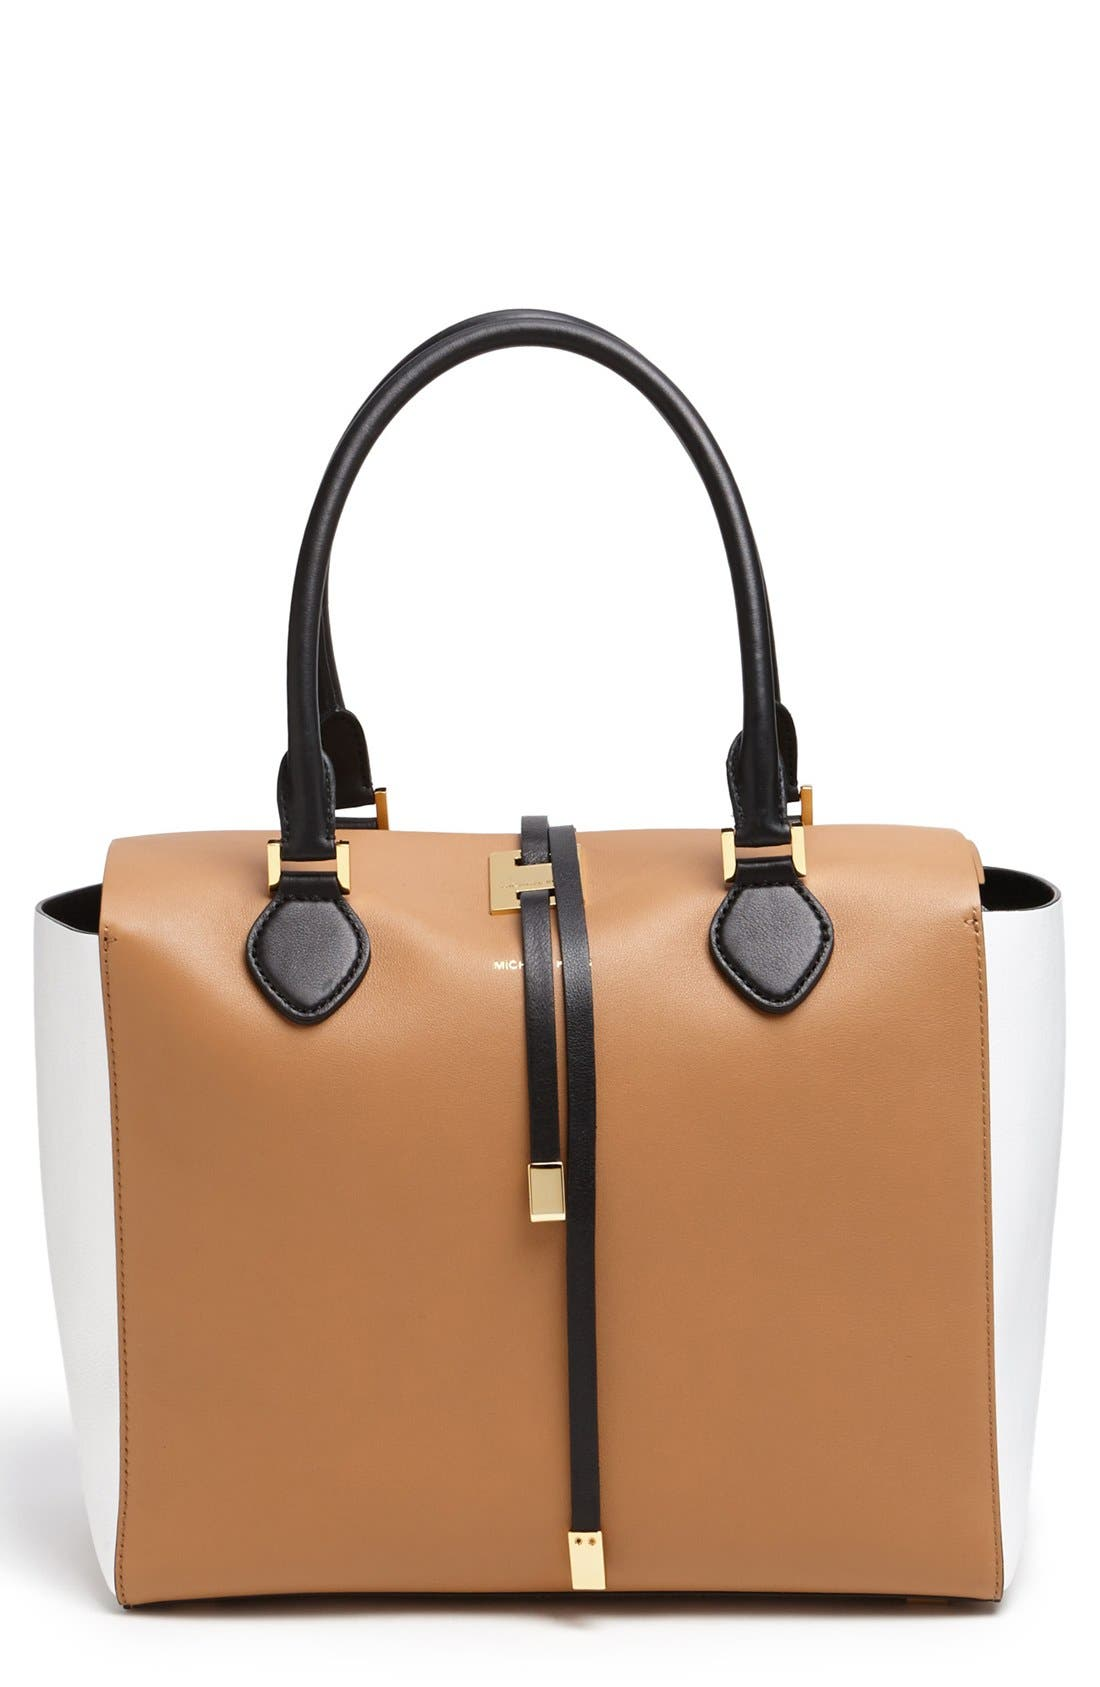 Alternate Image 1 Selected - Michael Kors 'Large Miranda' Colorblock Calfskin Tote